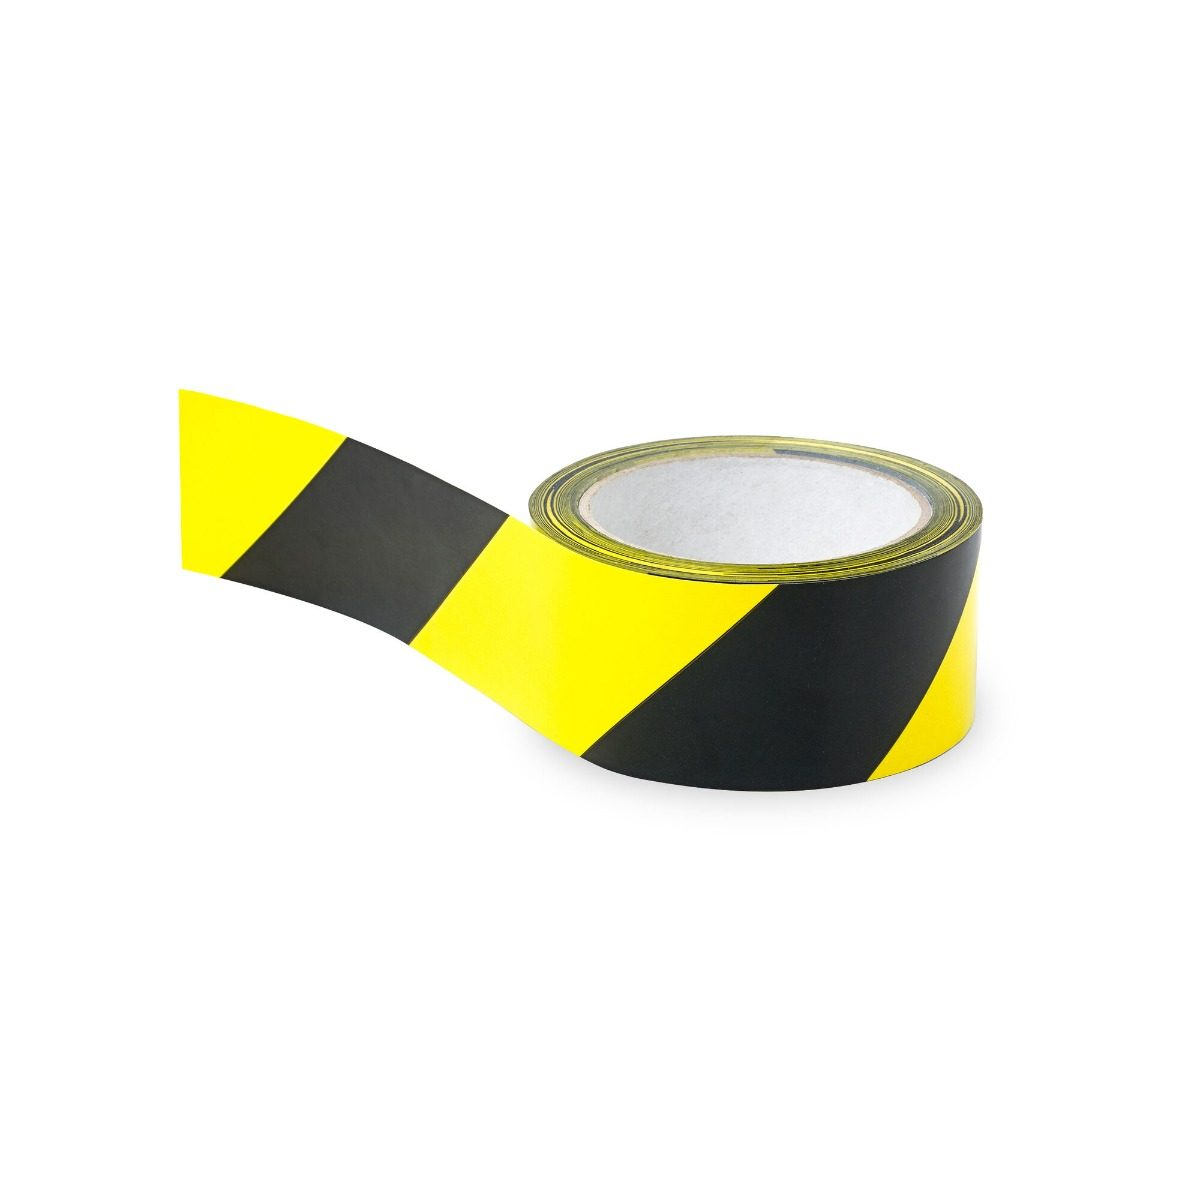 Hazard Marking Tape Yellow & Black - 48mm x 66m